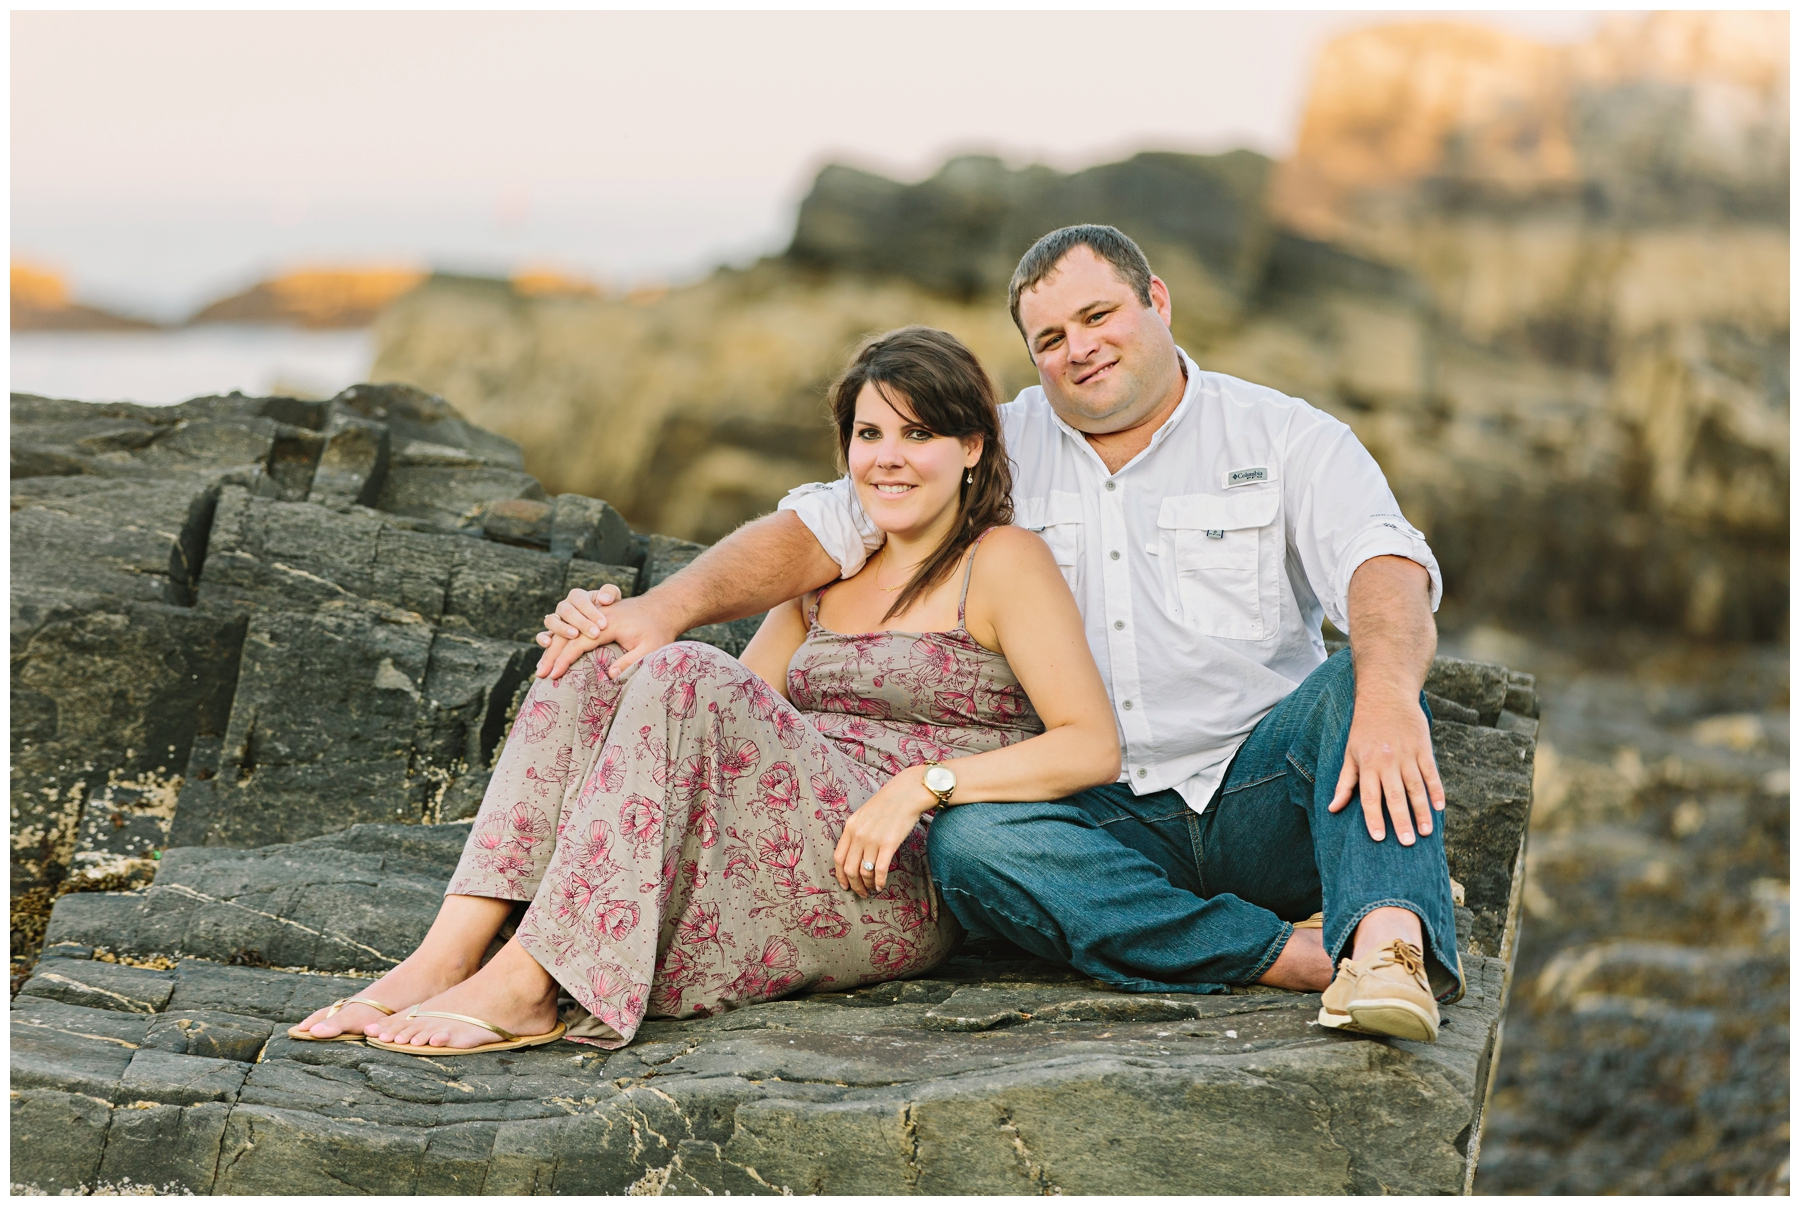 Maine_Photographer_Engagements_FortWilliams_PortlandHeadLight_lighthouse_coastal_seaside-010